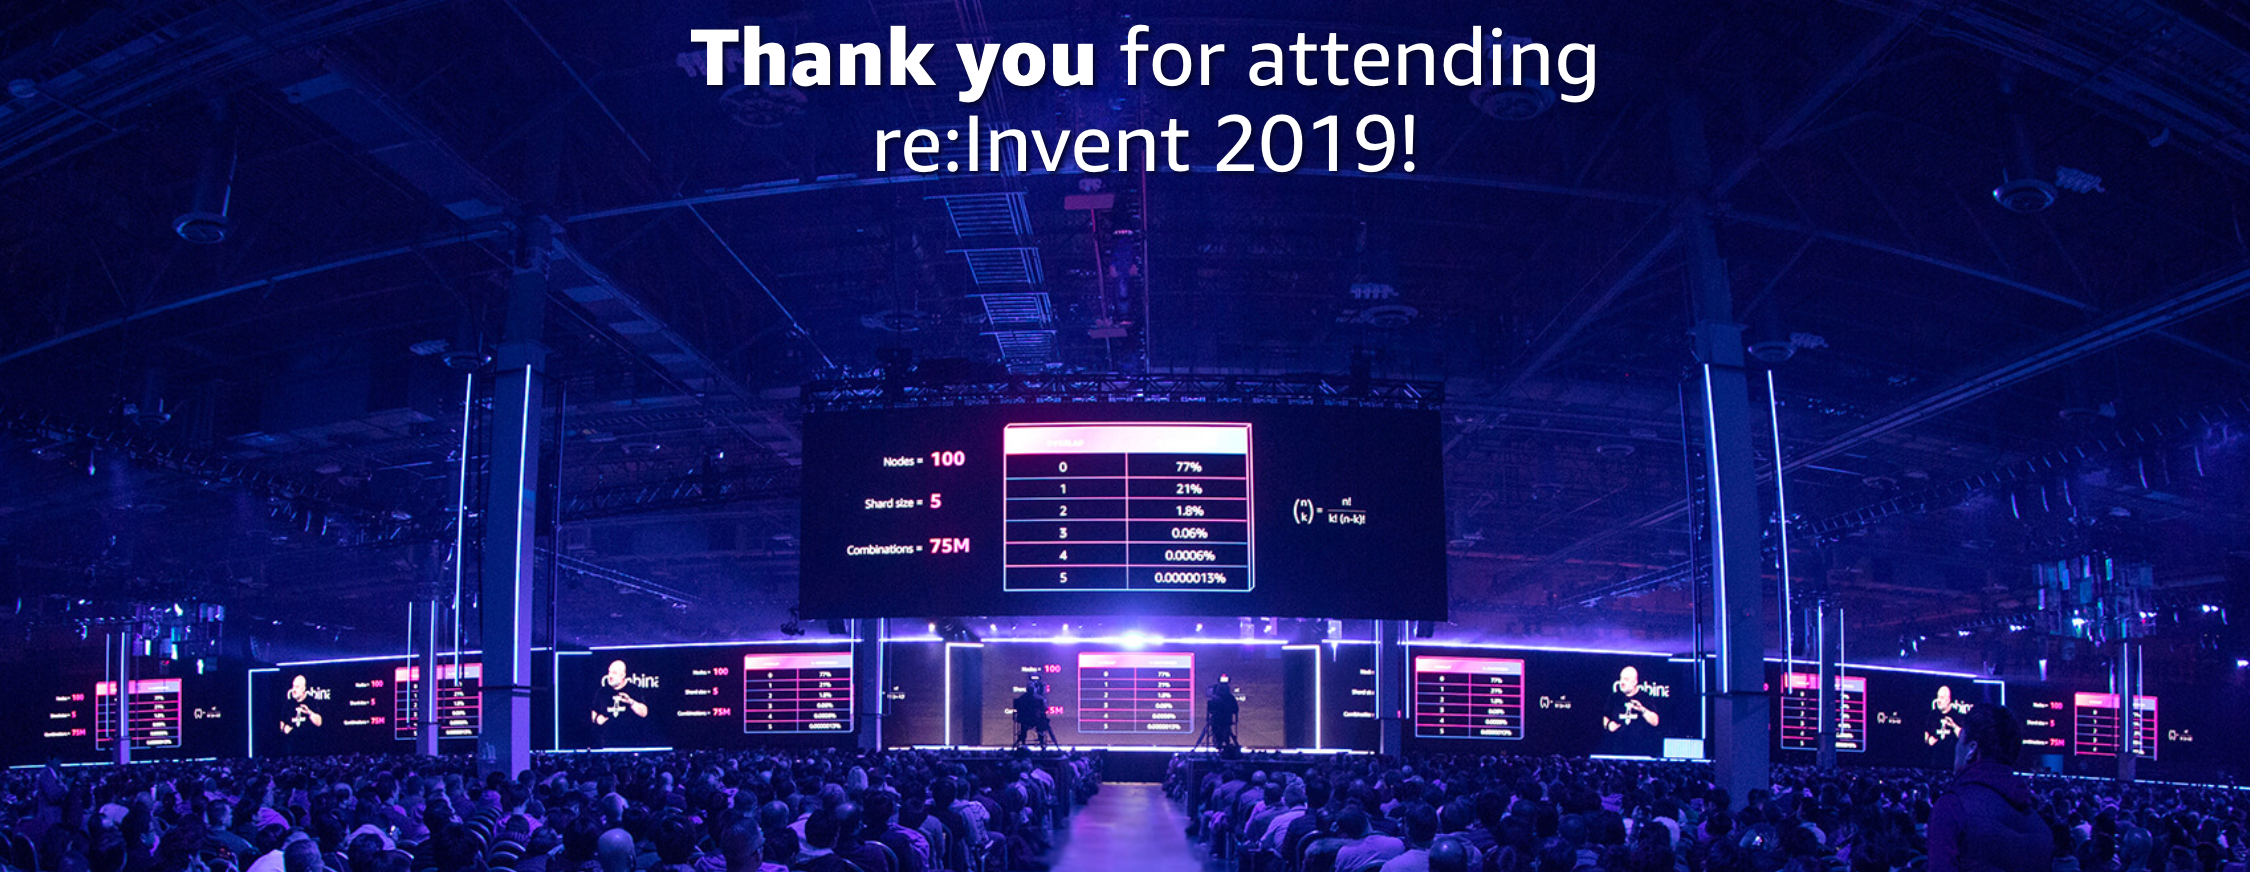 Thank you for attending re:Invent 2019